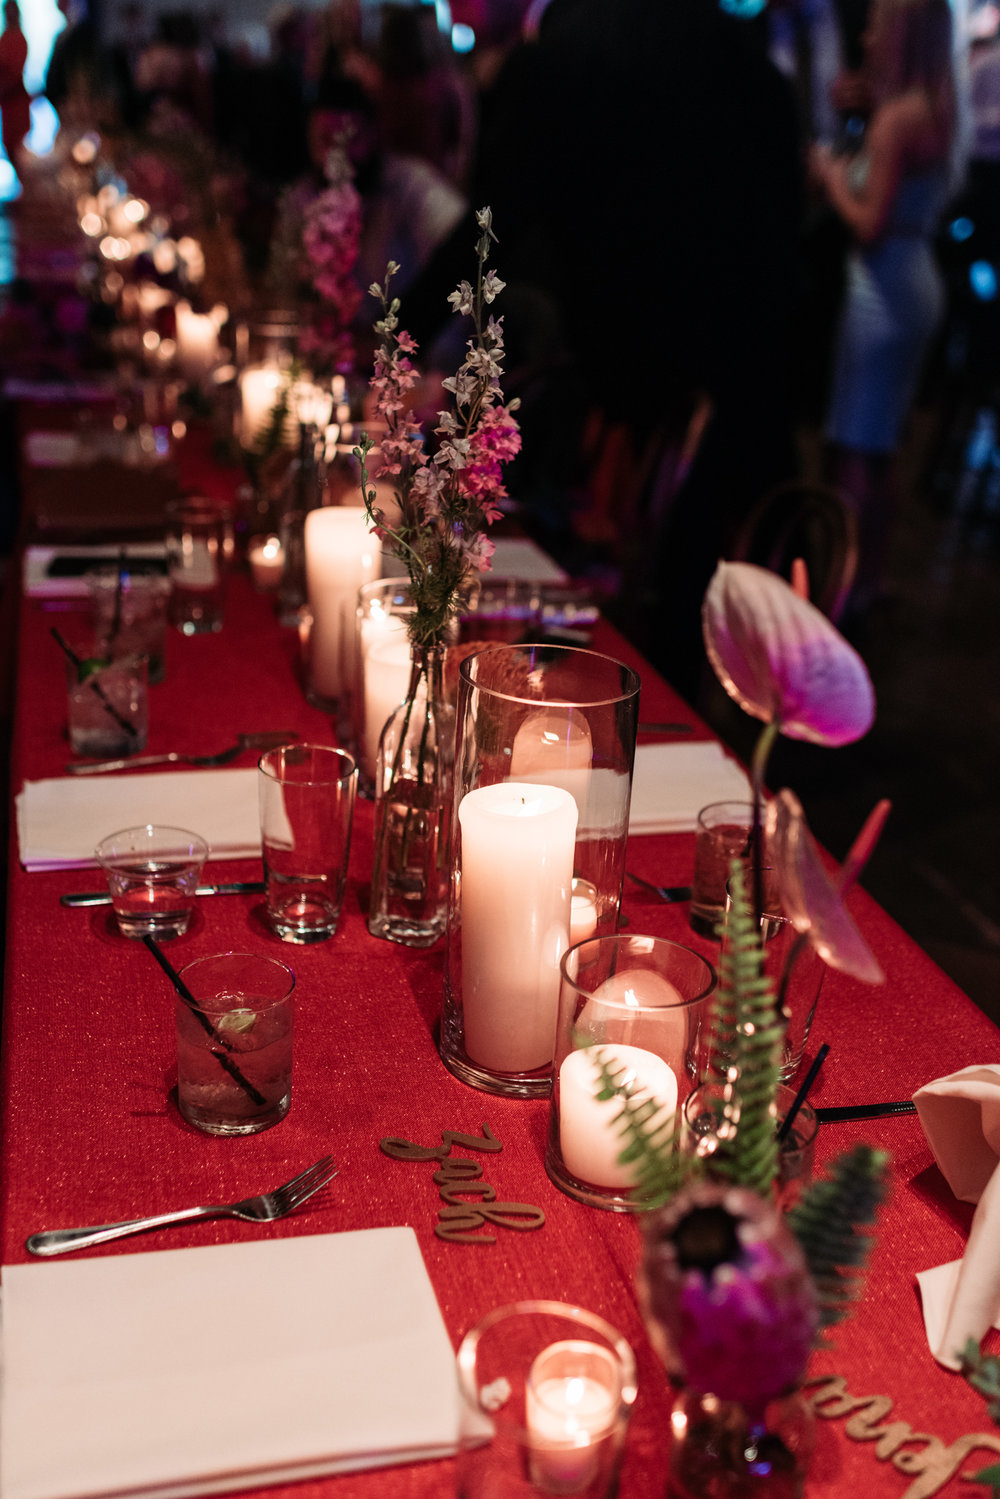 austin.wedding.bbp (92 of 125).jpg